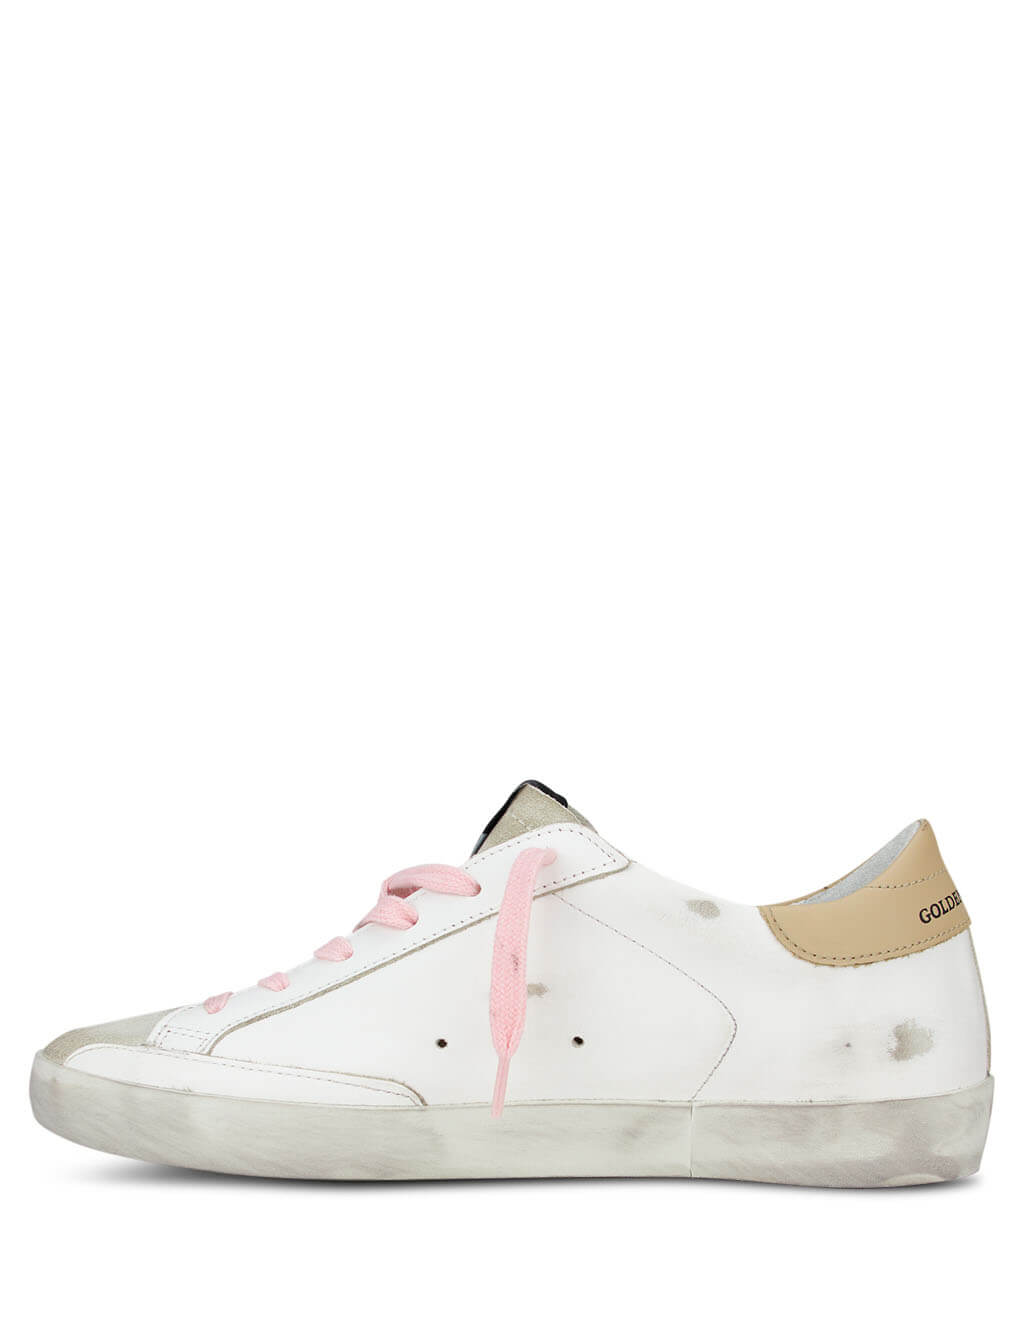 Golden Goose Women's Giulio Fashion White Superstar Sneakers GWF00101.F000124.80165